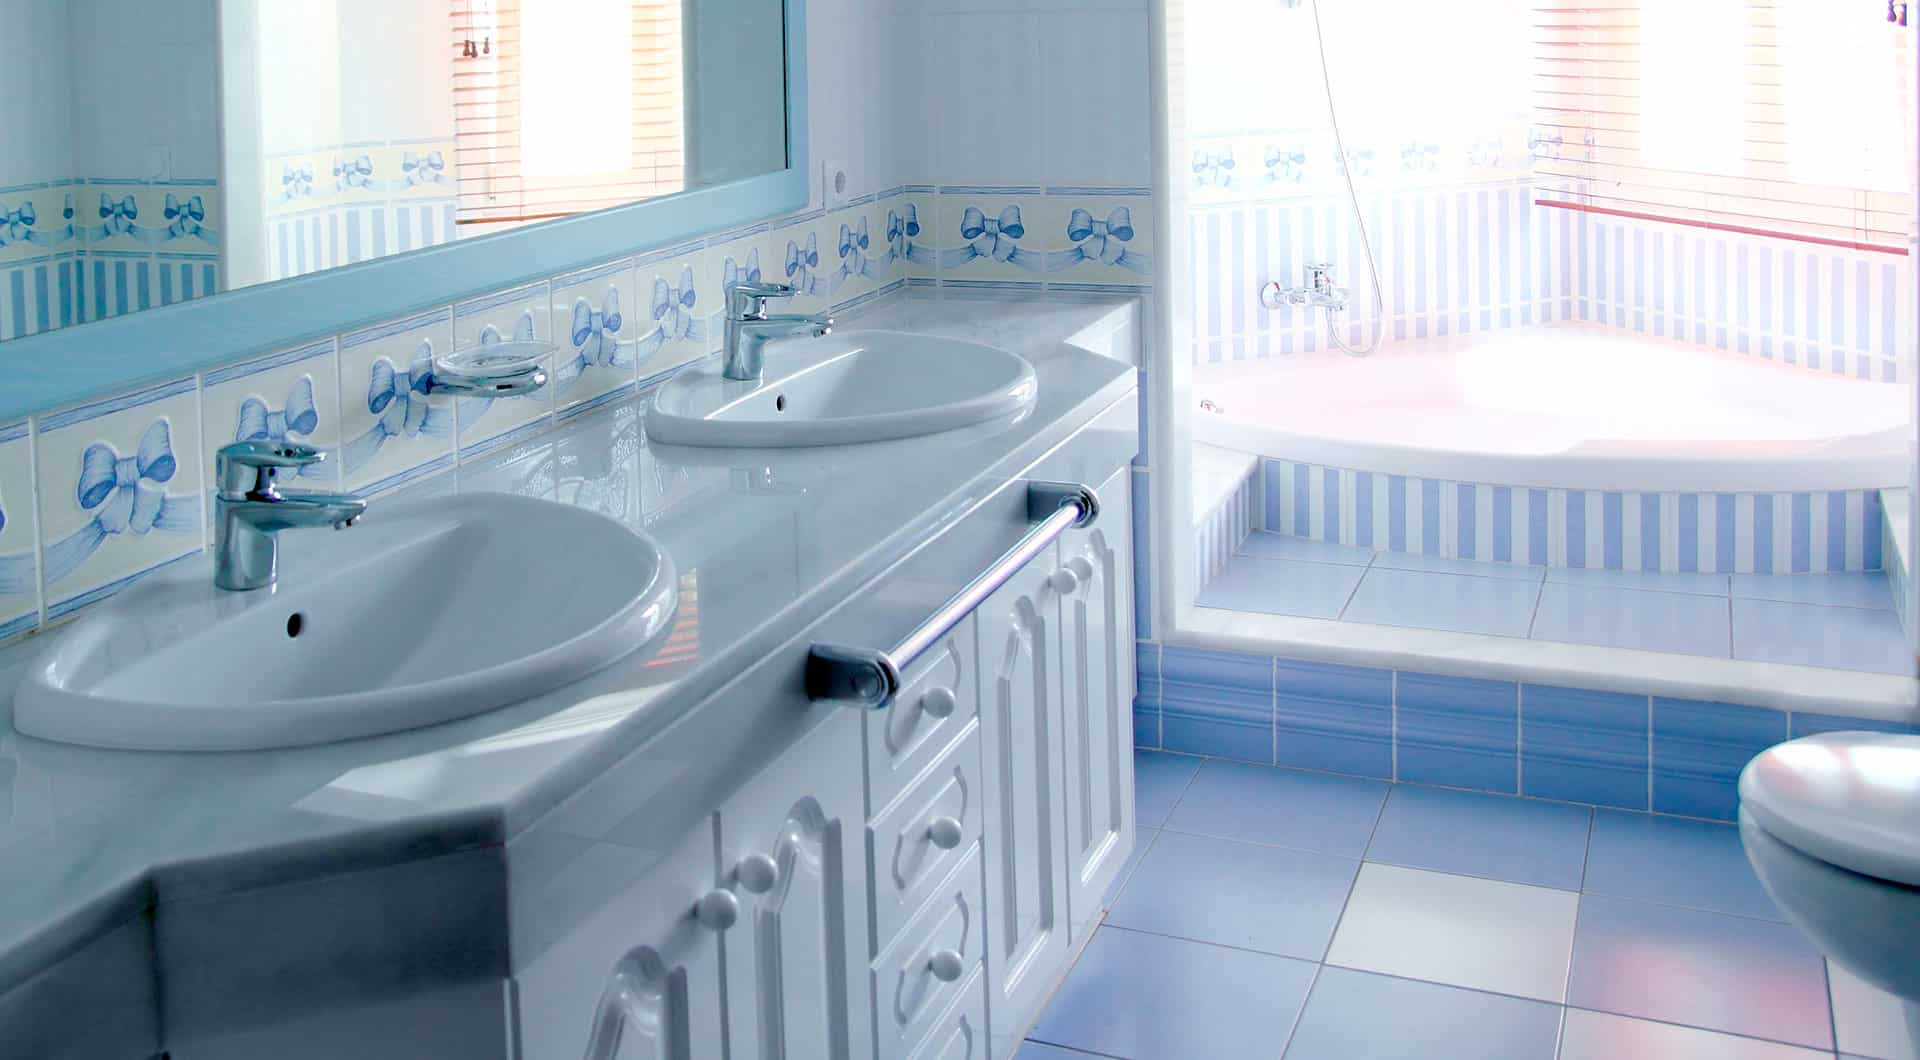 Bathtub Reglazing & Sink Refinishing Services